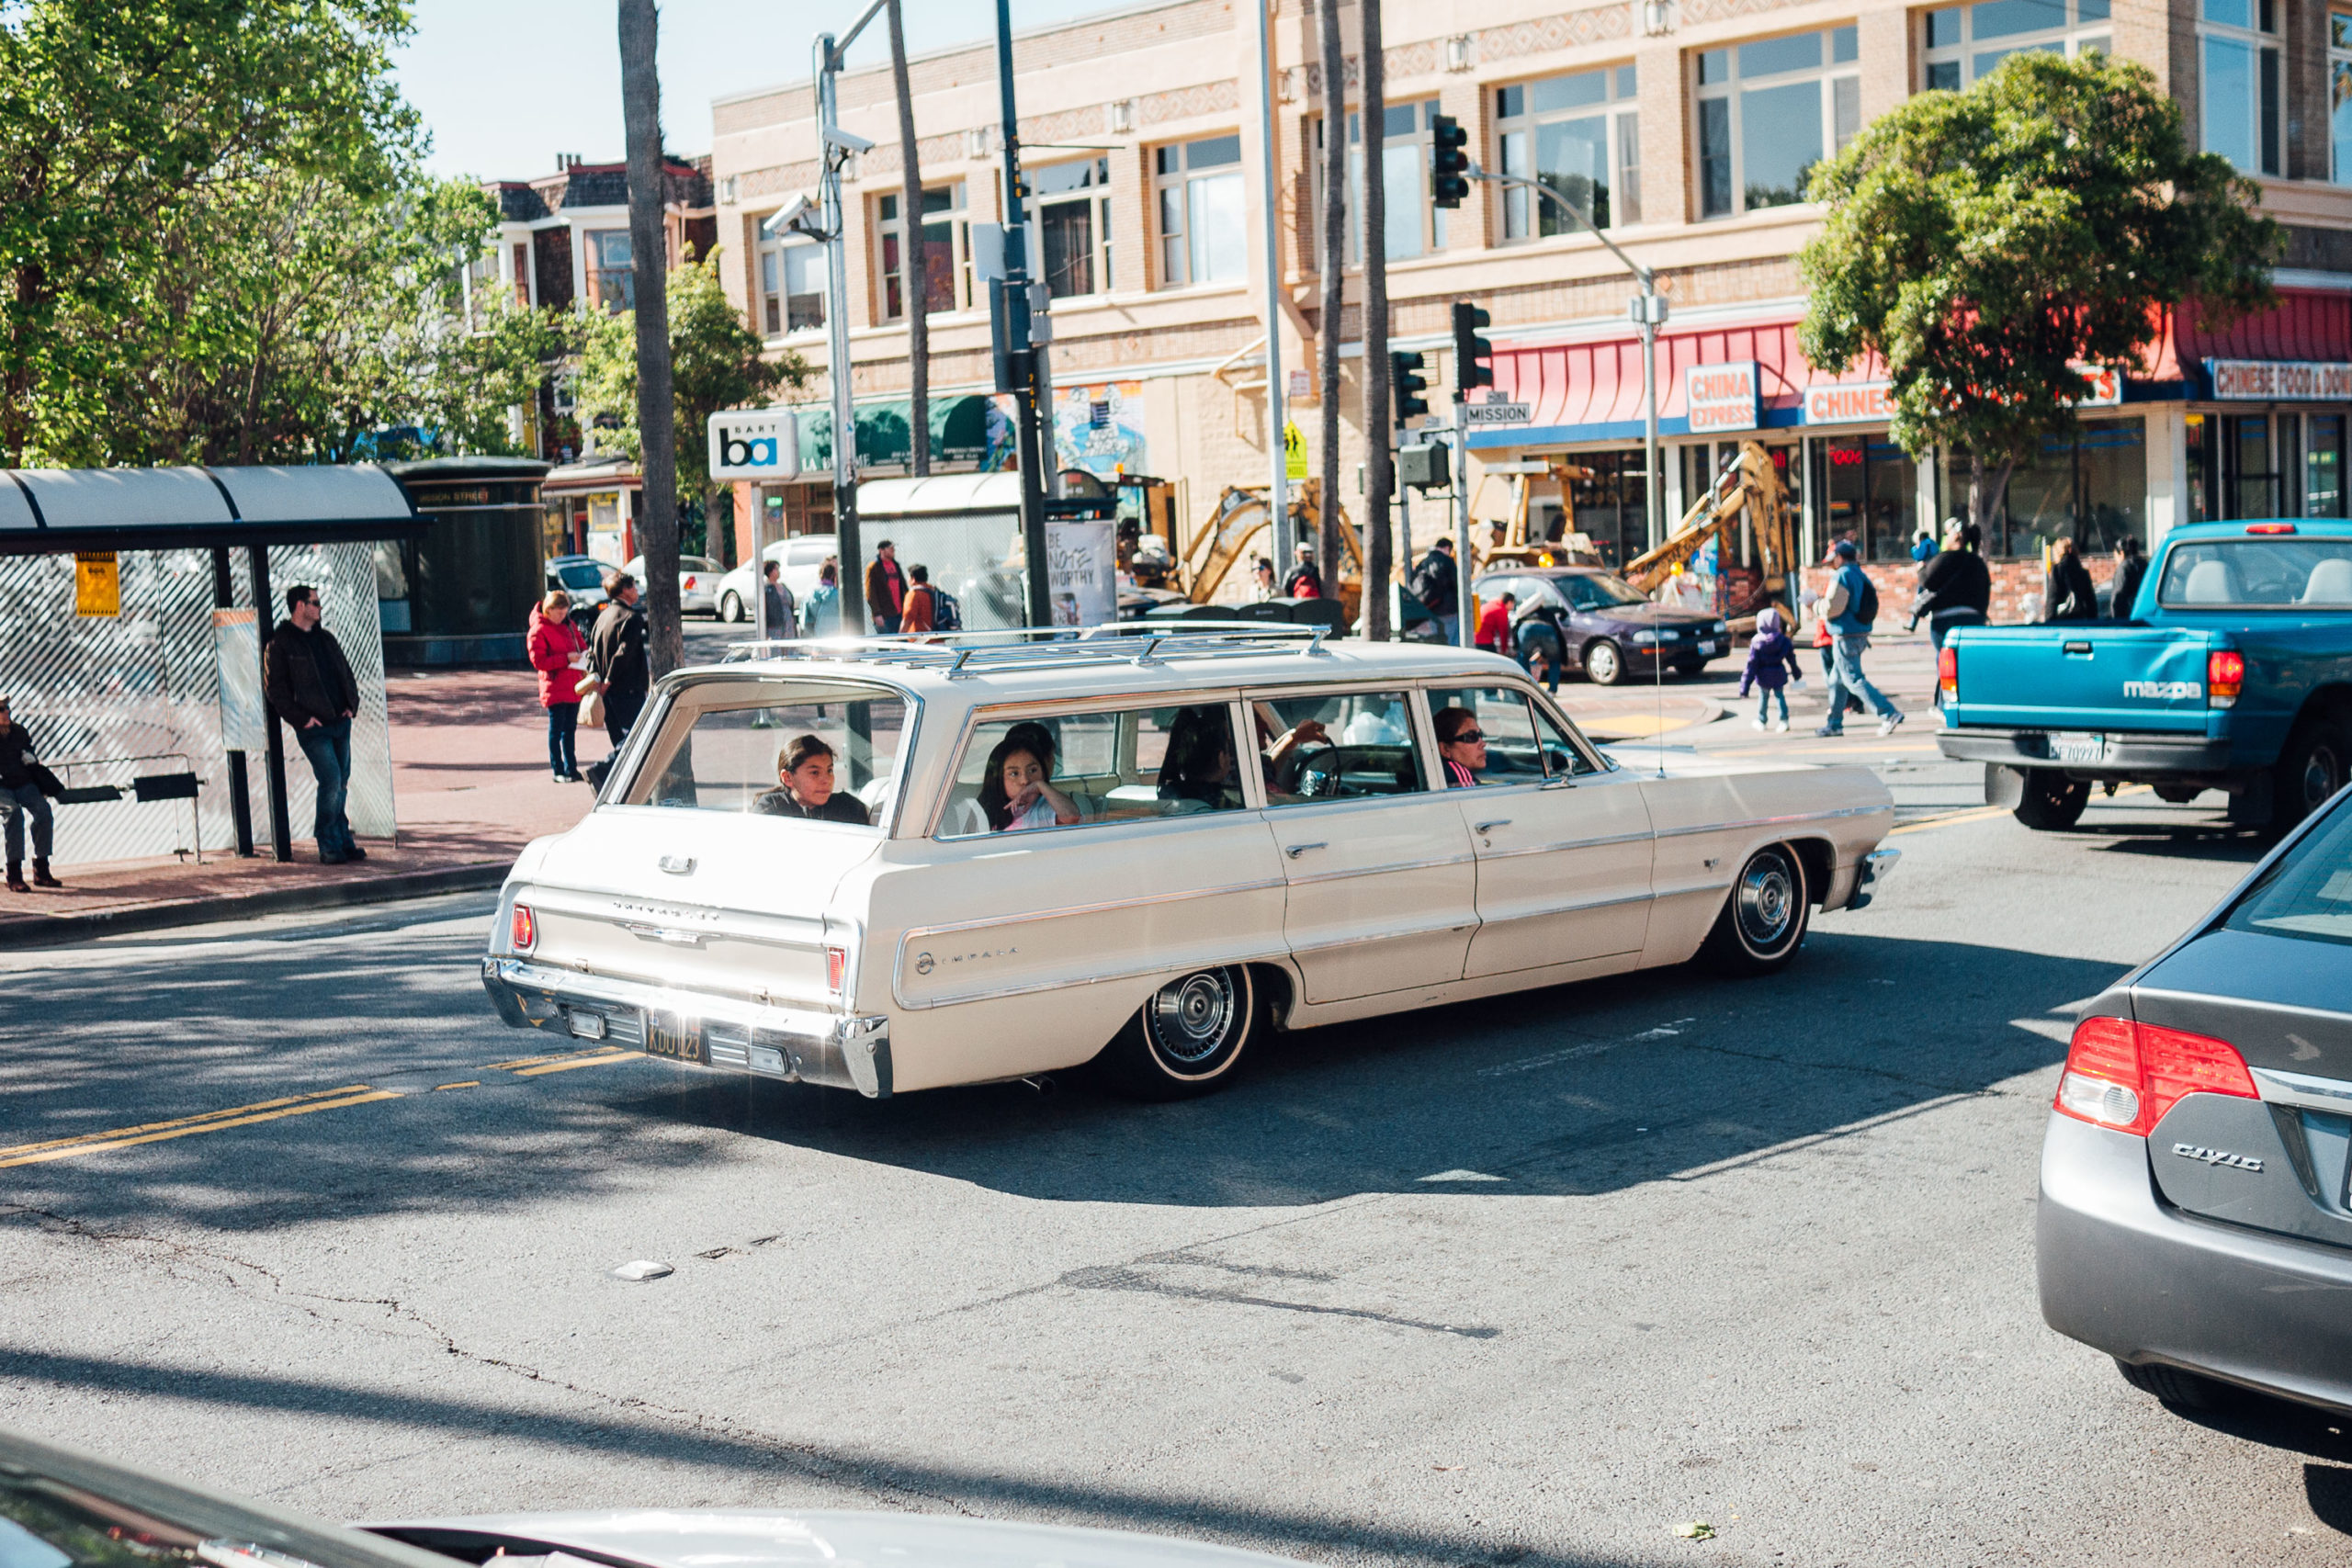 A family in a classic Impala station wagon